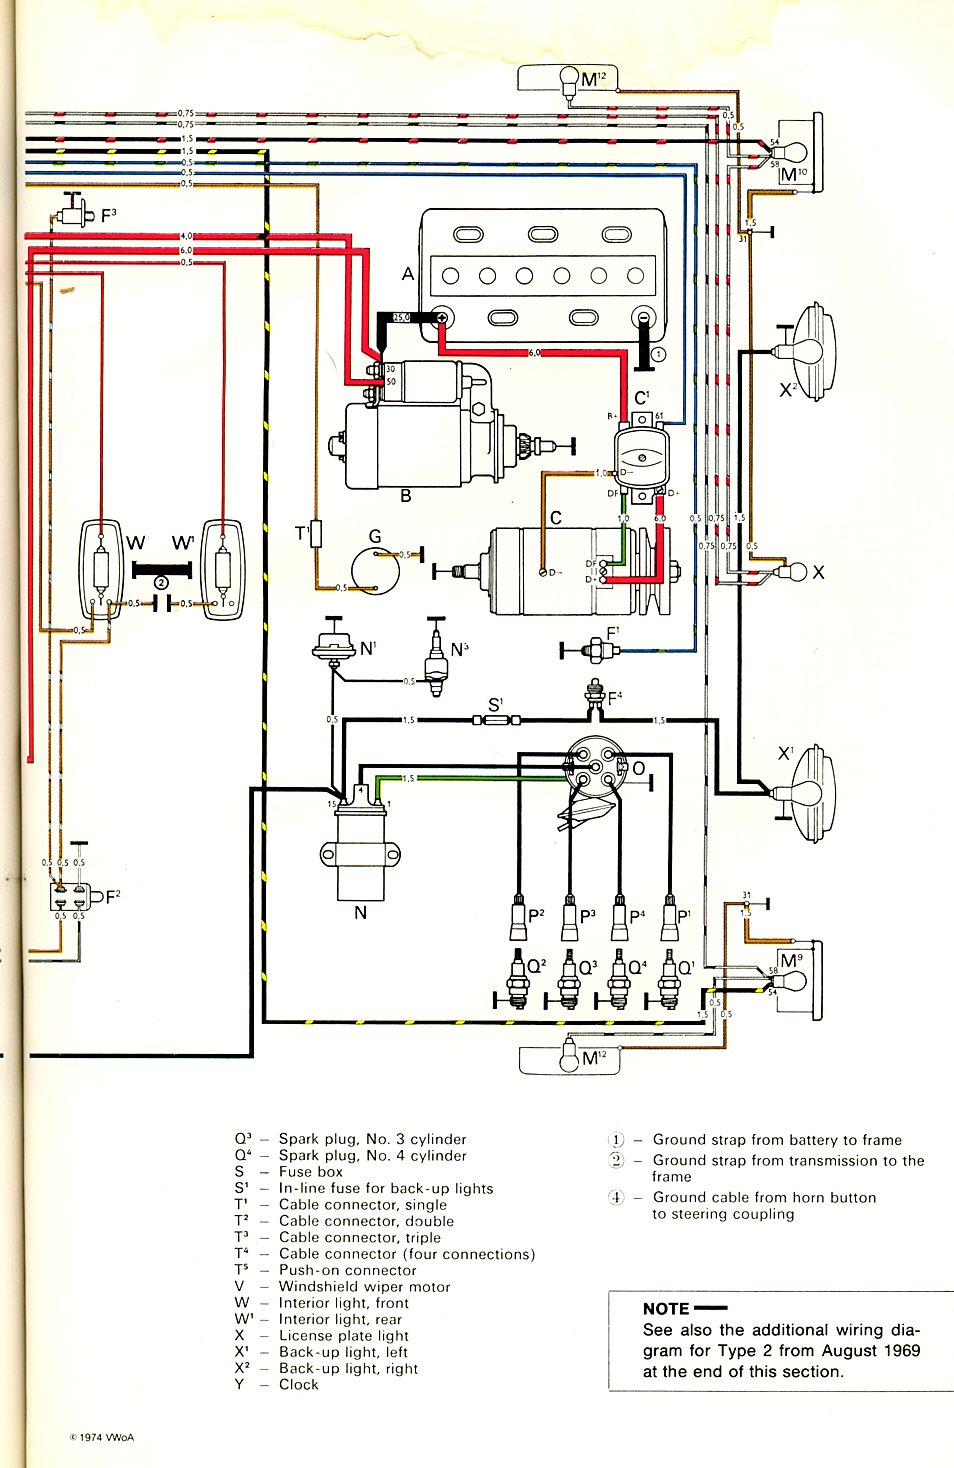 baybus_70b thesamba com type 2 wiring diagrams vw engine wiring diagram at gsmportal.co